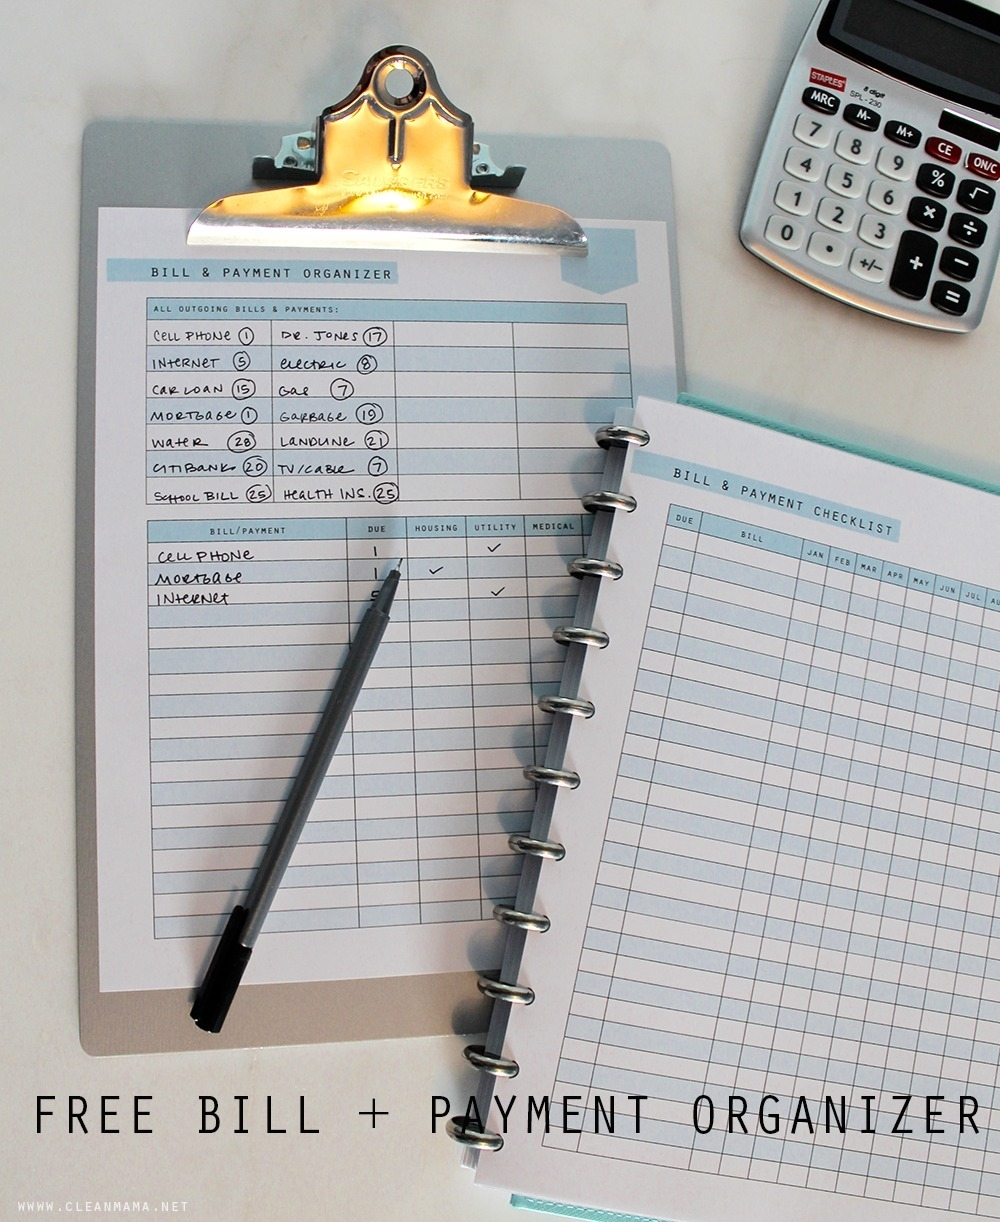 Free Printable - Bill And Payment Organizer - Clean Mama intended for Month At A Glance Bill Organizer